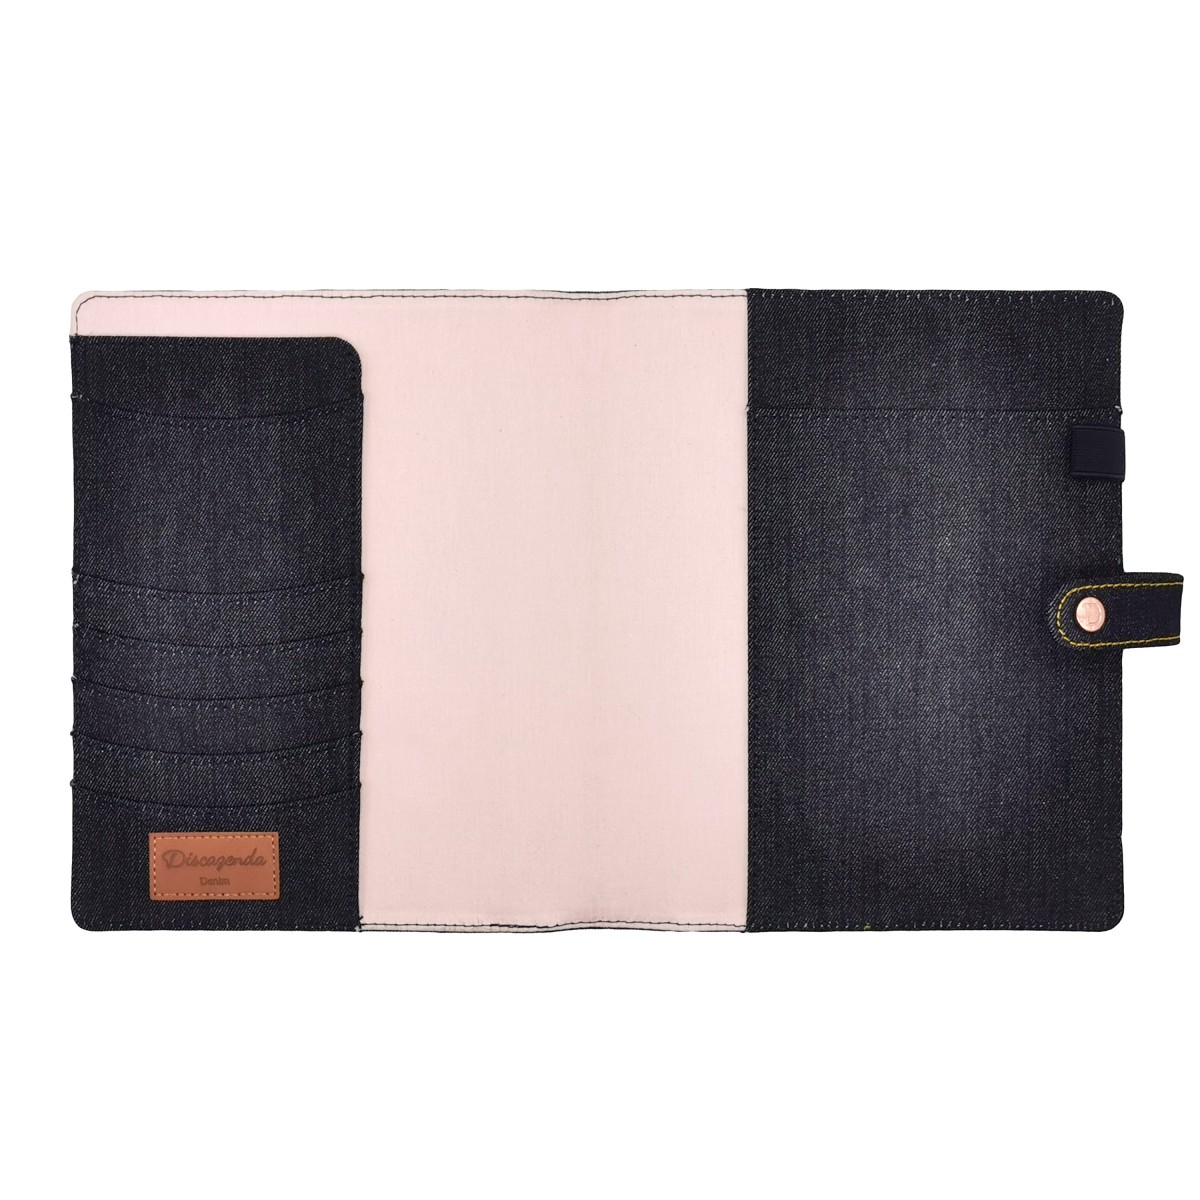 DISCAGENDA DENIM A5 SNAP CLOSURE DISCBOUND PLANNER COVER